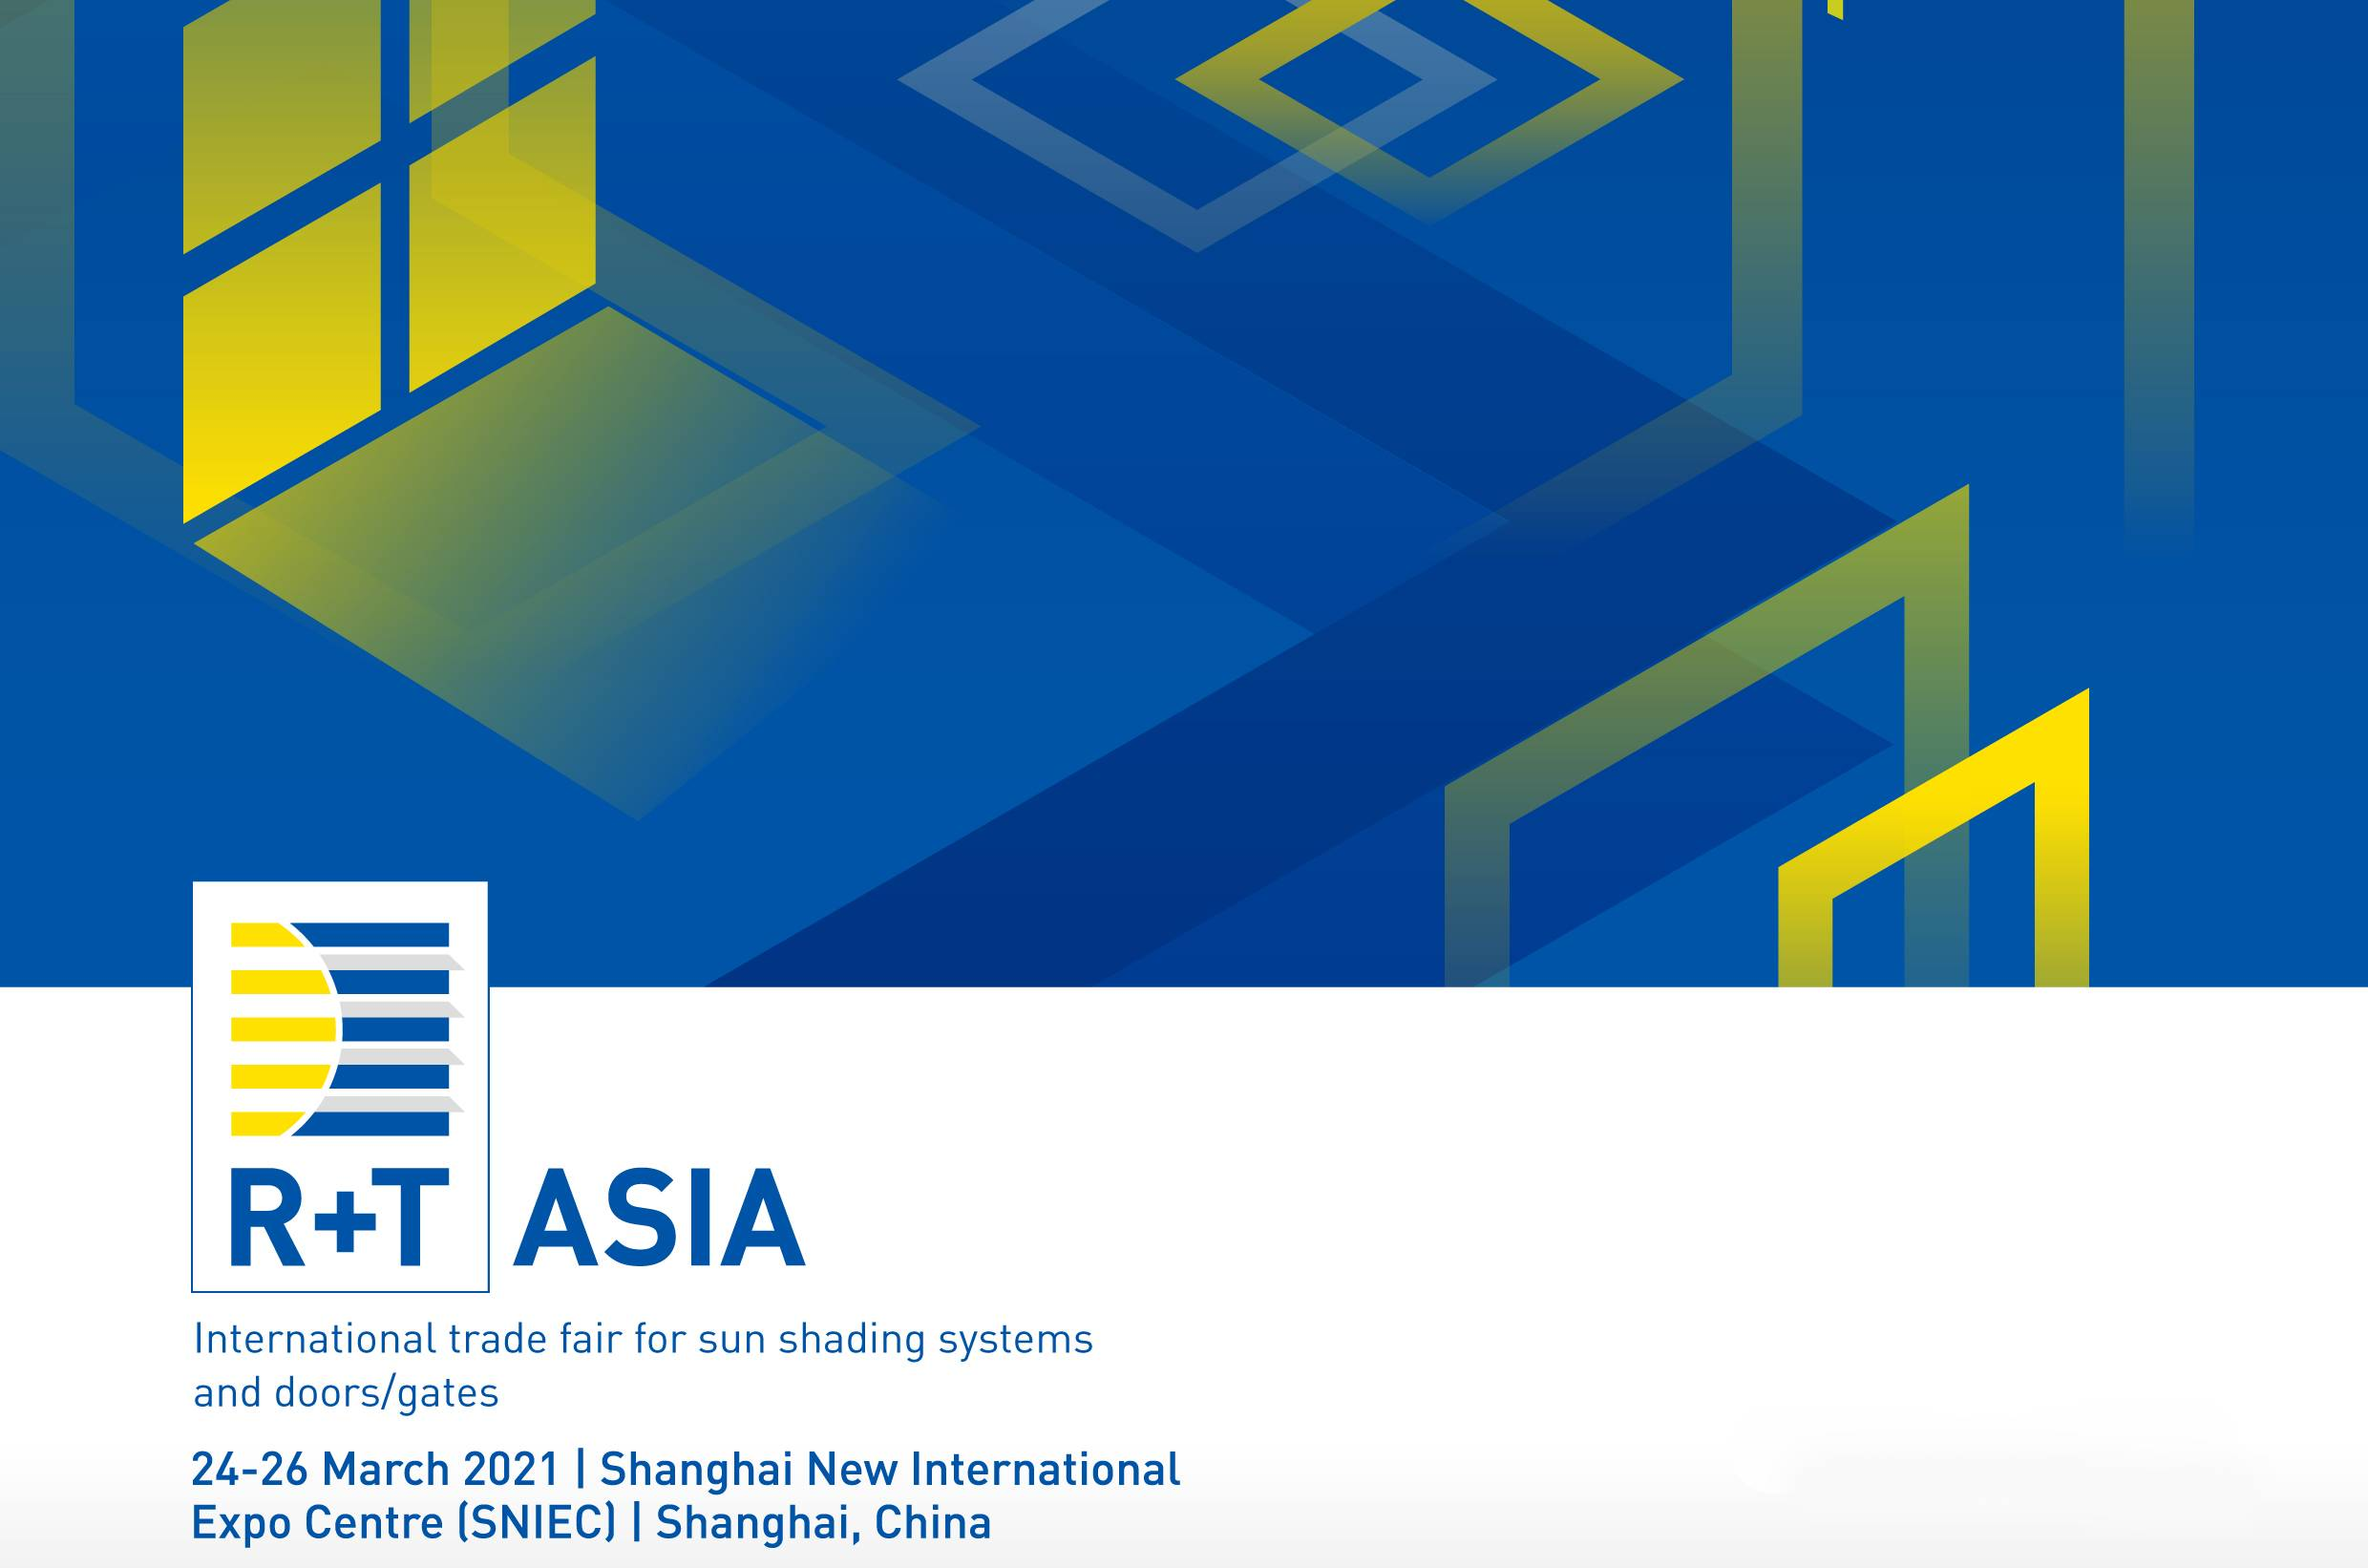 Welcome to R+T Asia 2021